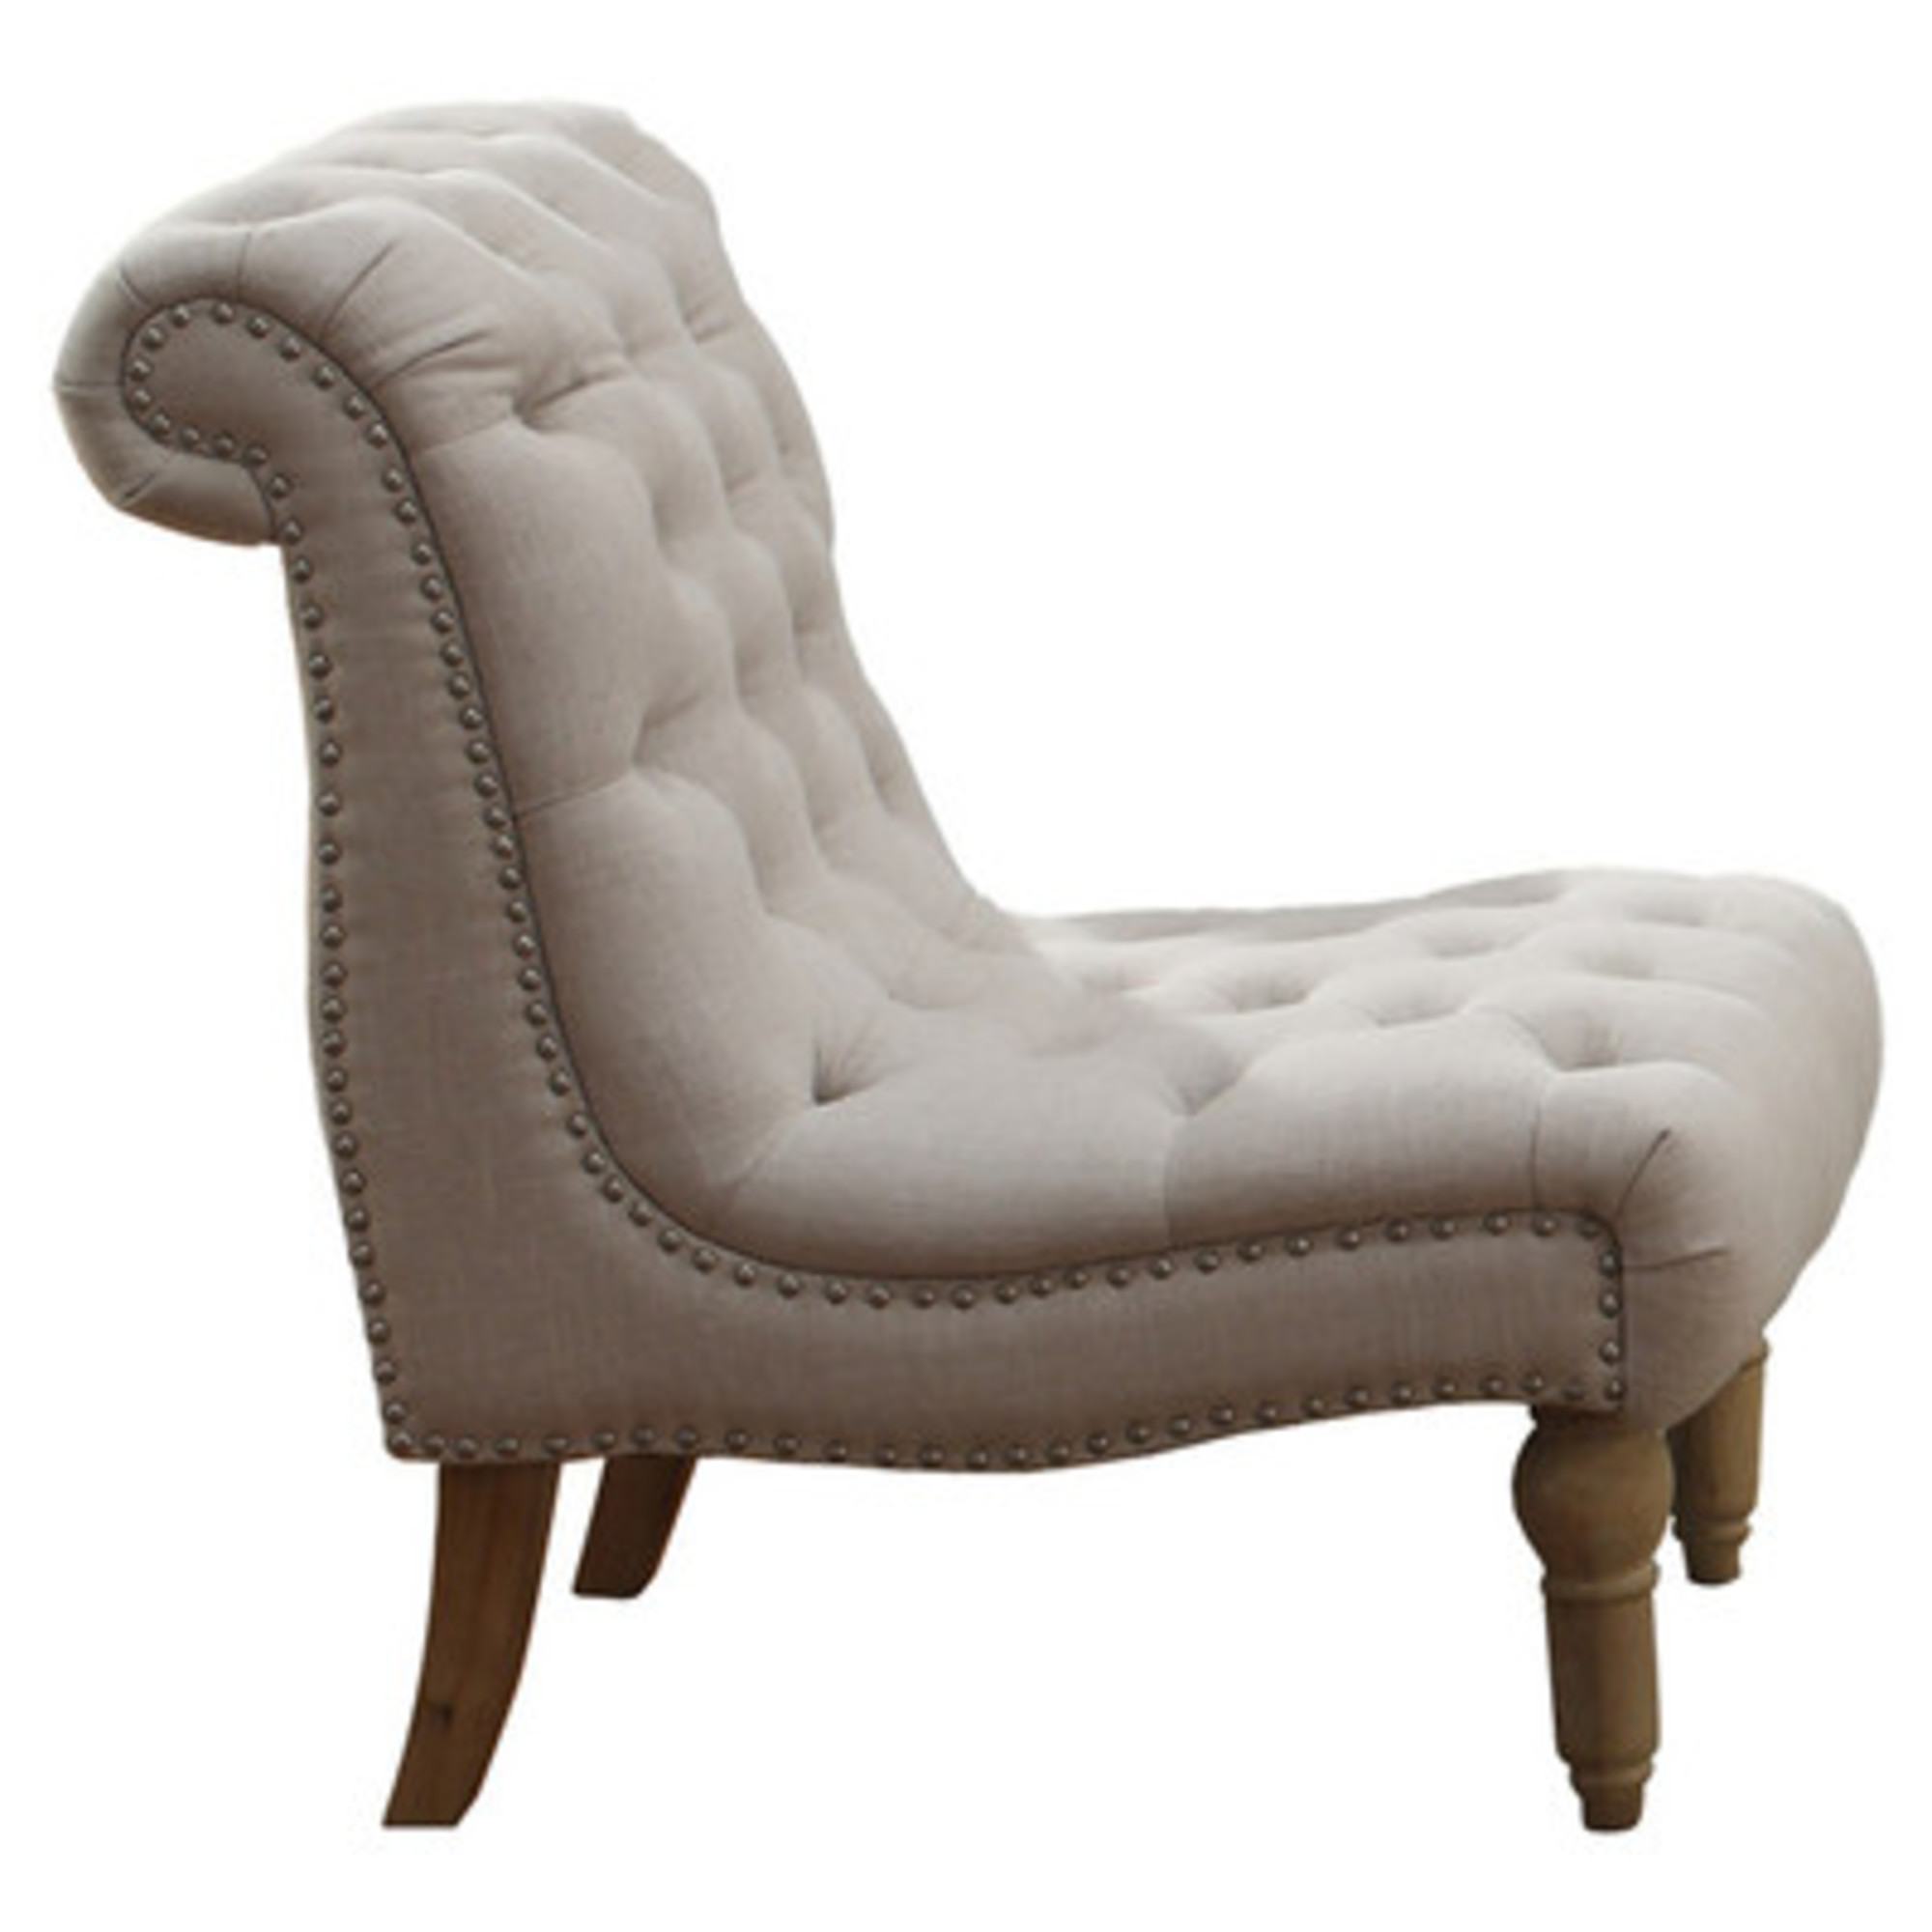 Emerald Home Hutton II Off White Armless Accent Chair with Button Tufting, Nailhead Trim, And Turned Legs